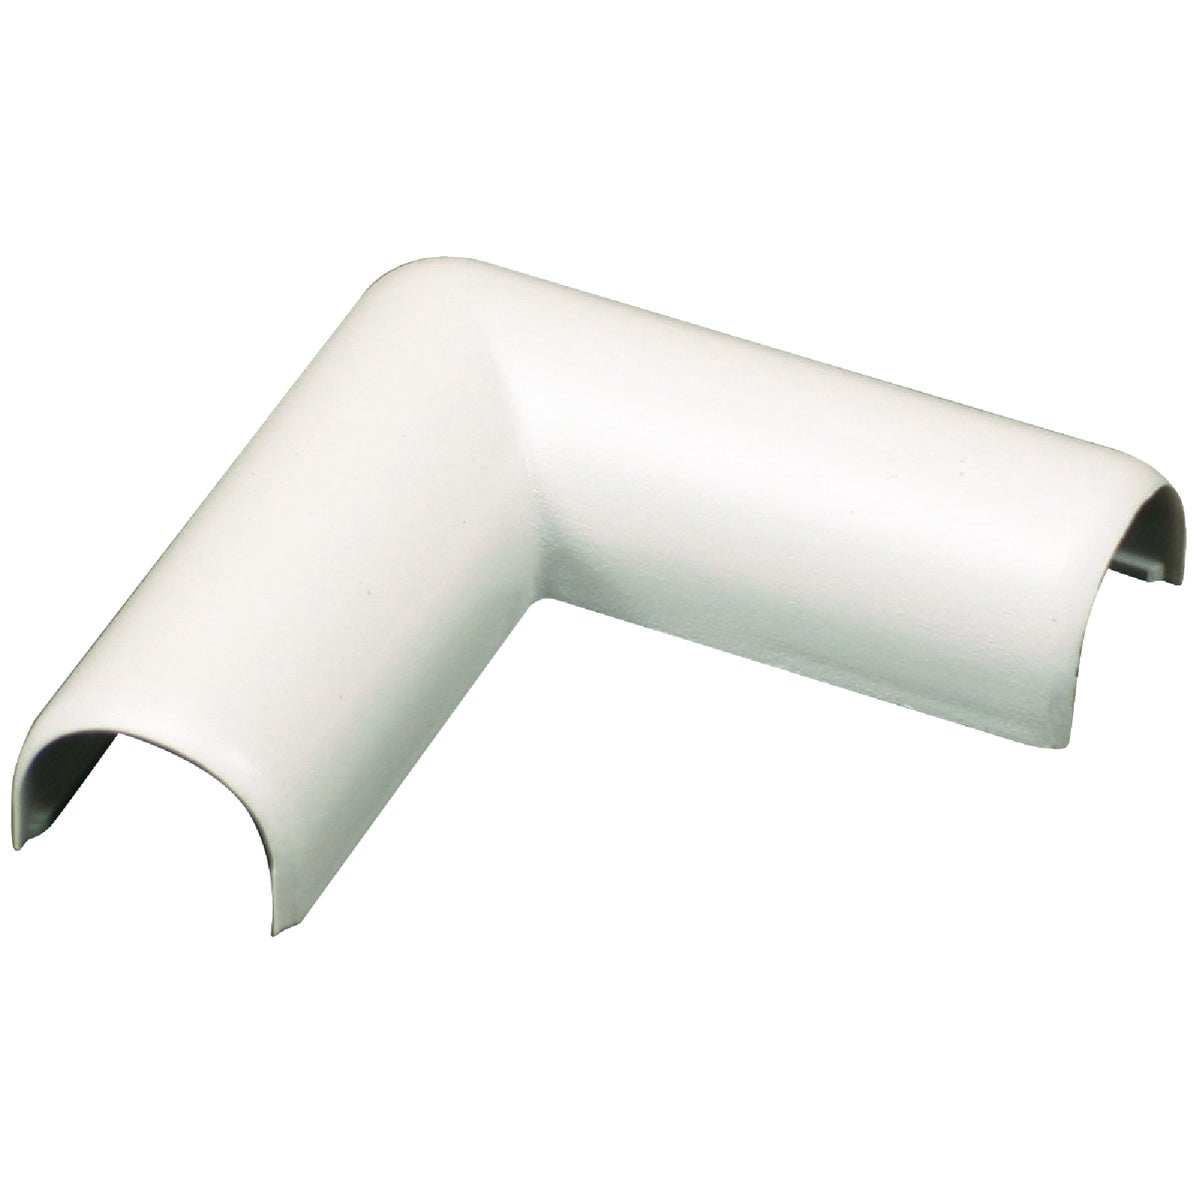 CORDMATE FLAT ELBOW - C16 by Wiremold / Legrand